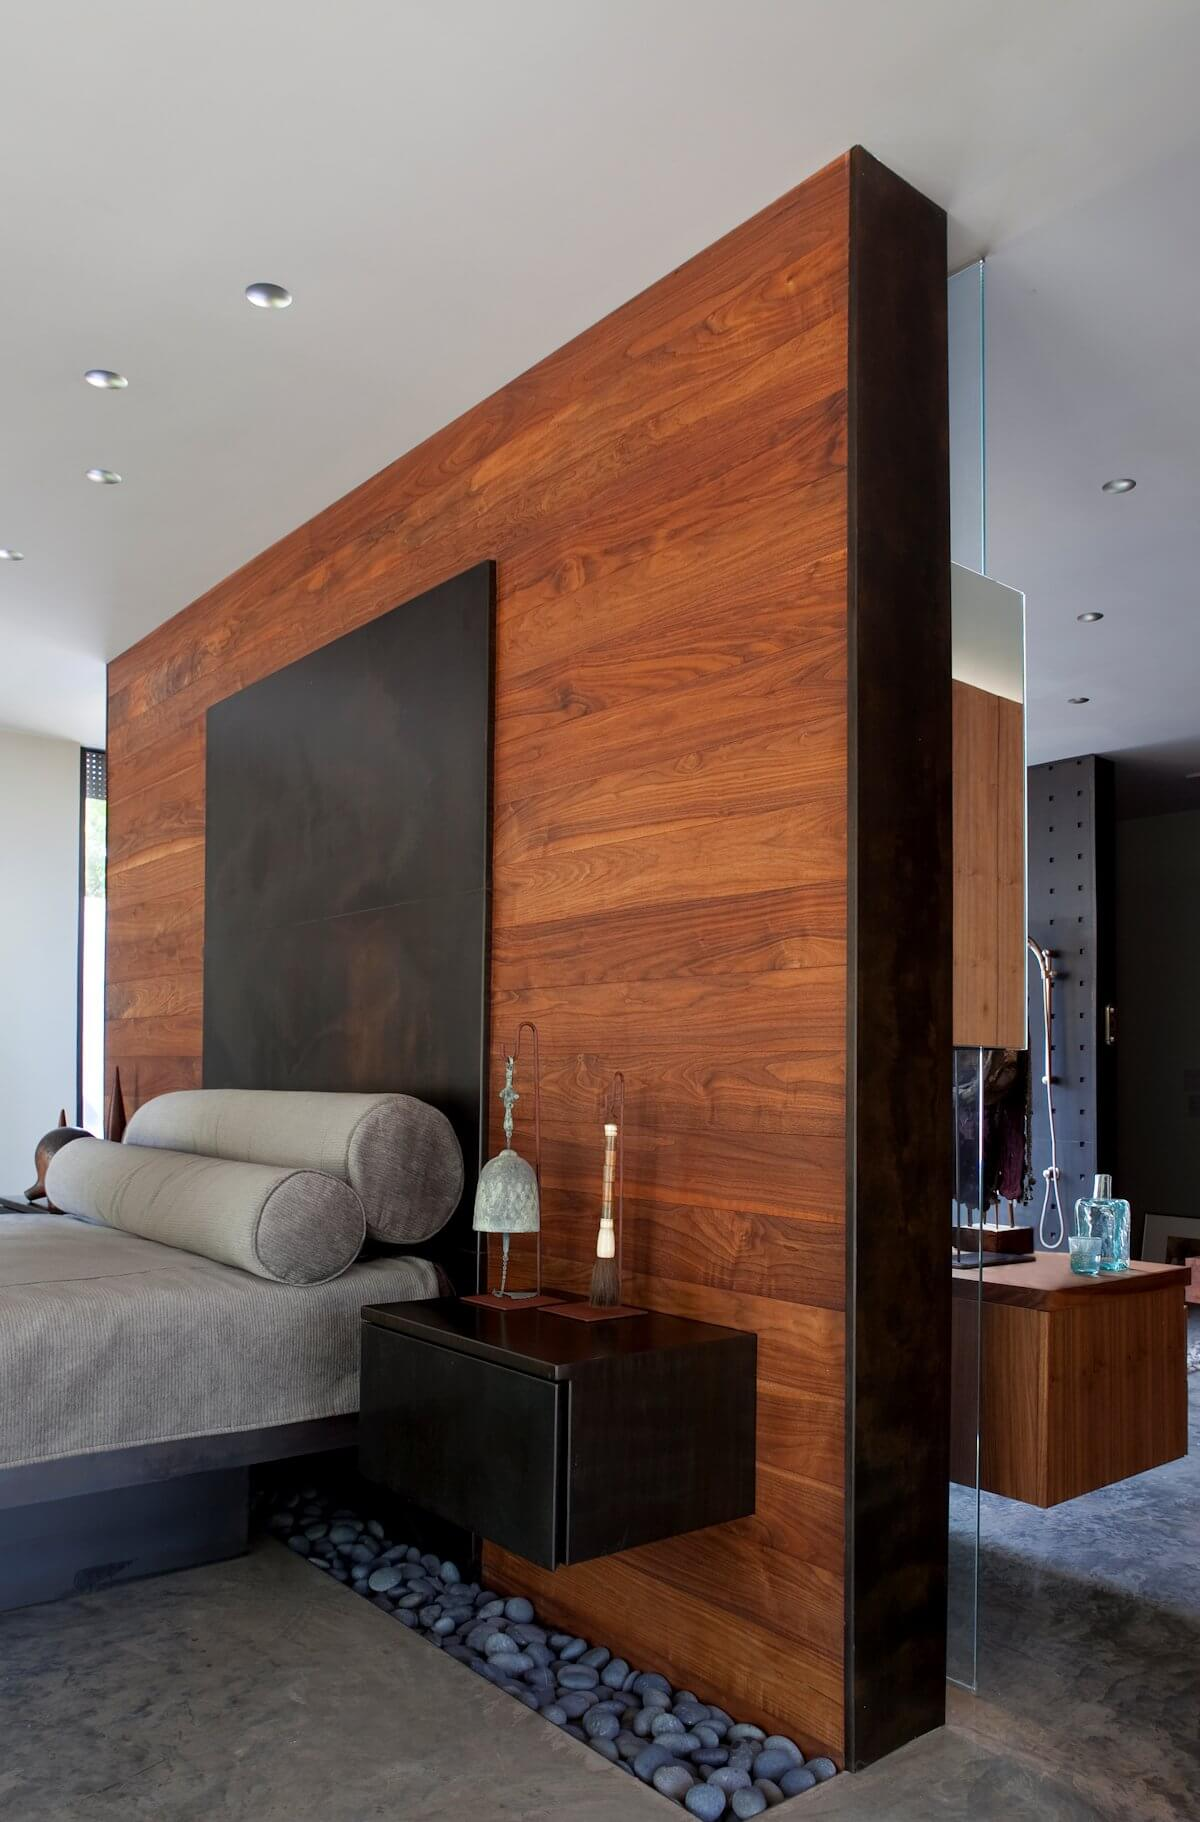 wood wall living room simple small interior design 25 best ideas and designs for 2019 zen divider